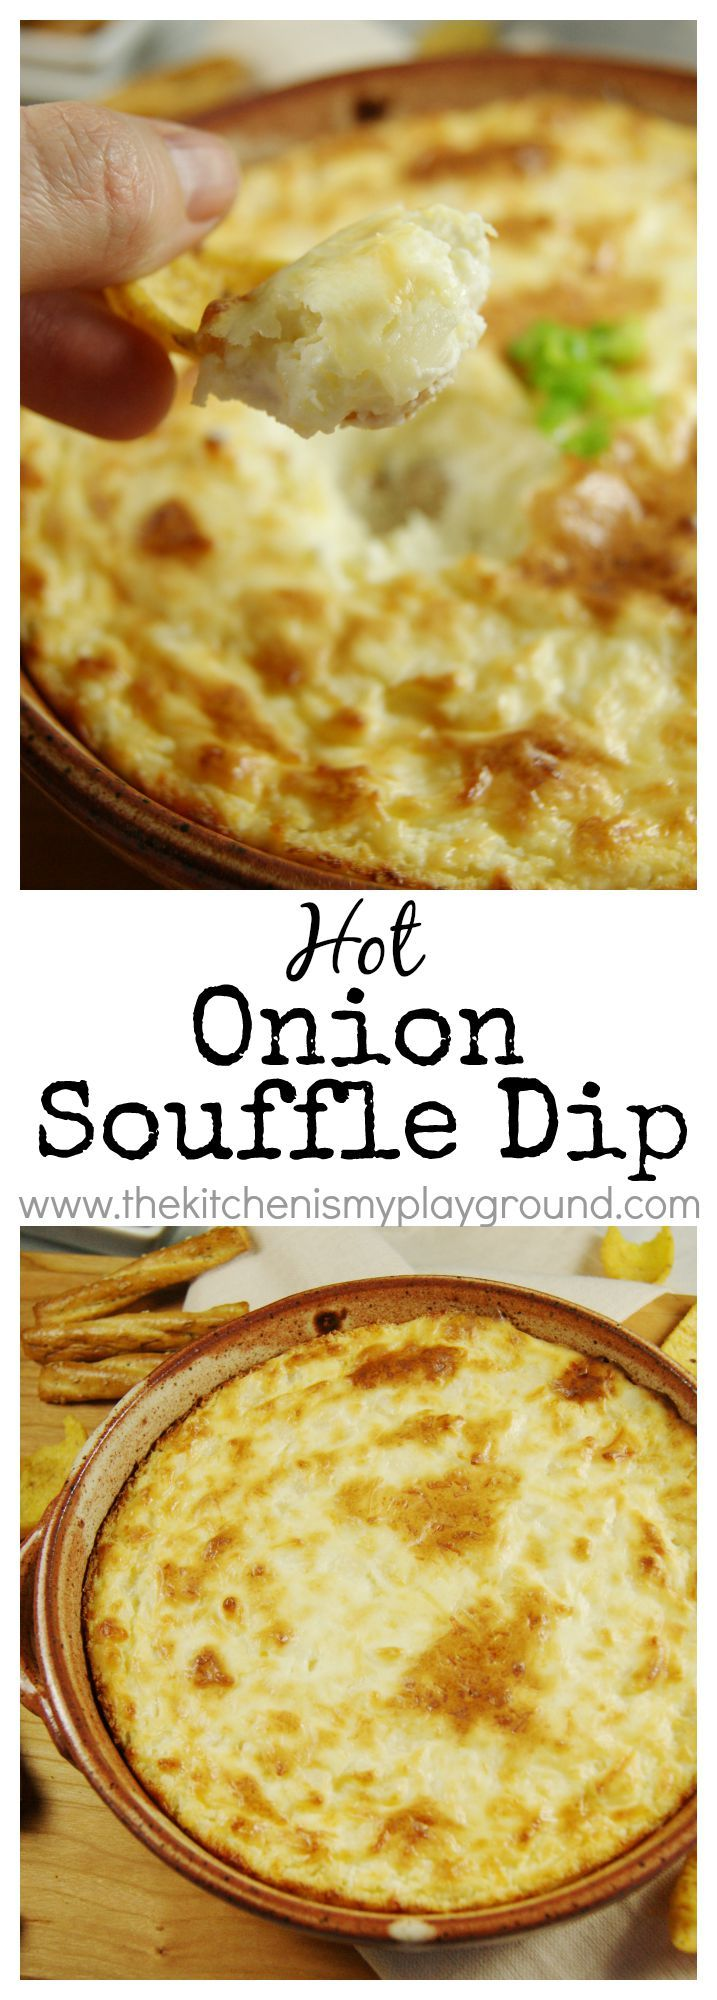 Hot Onion Souffle Dip ~ an easy, creamy, crowd-pleasing dip! www.thekitchenismyplayground.com